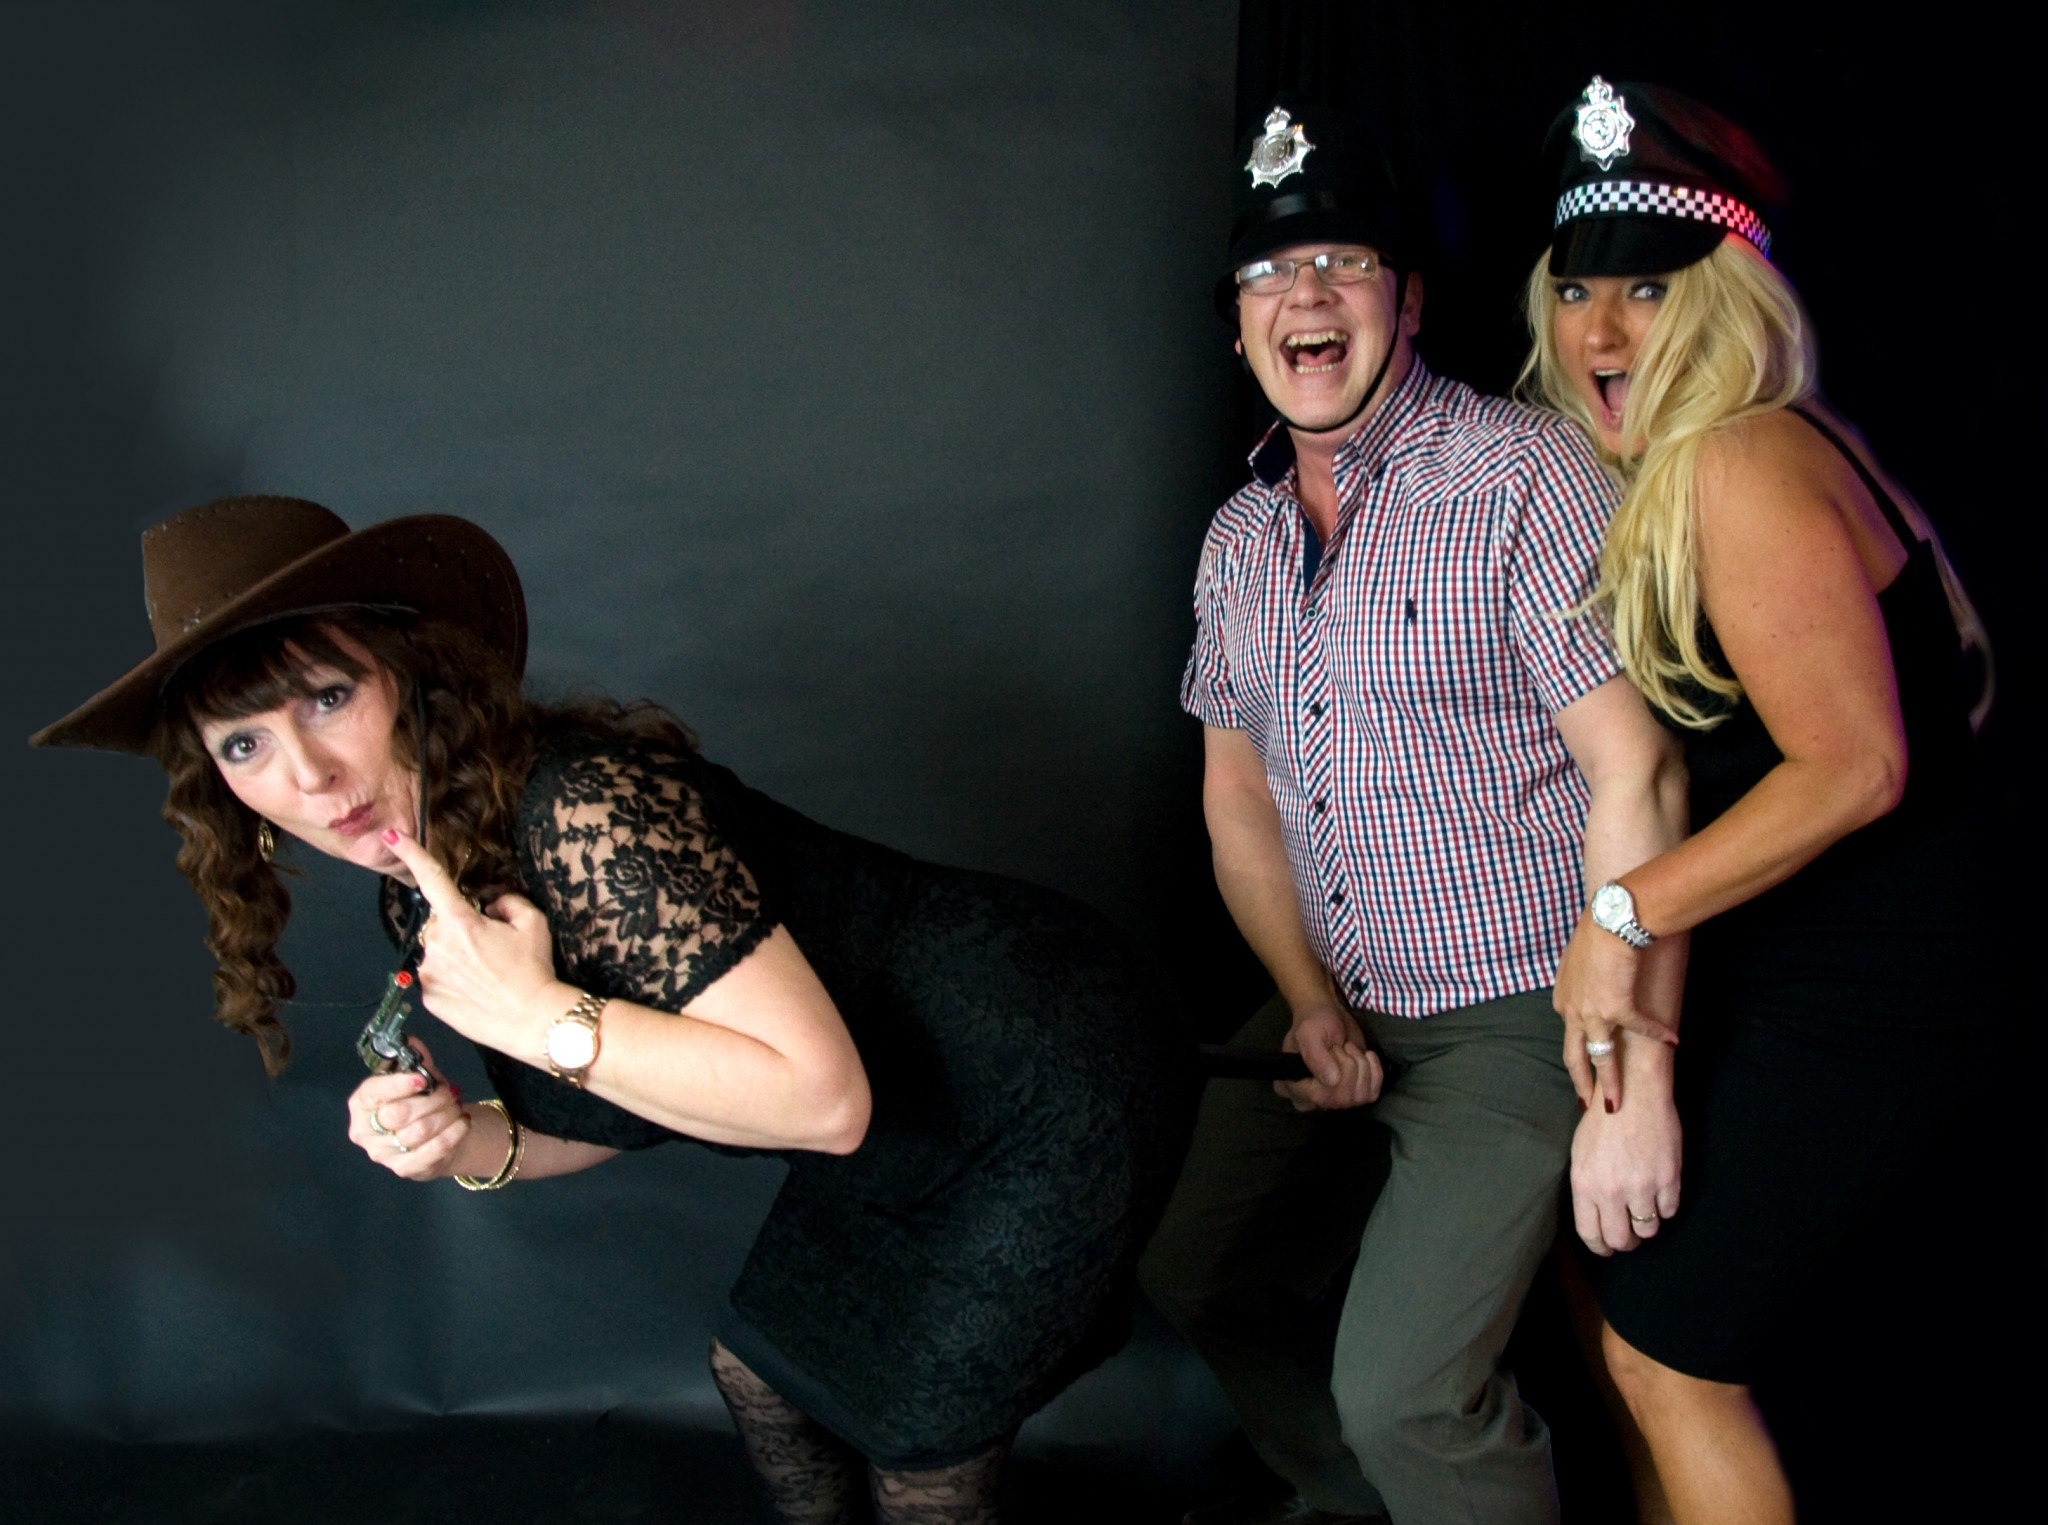 photo-booth-style-photography_9467